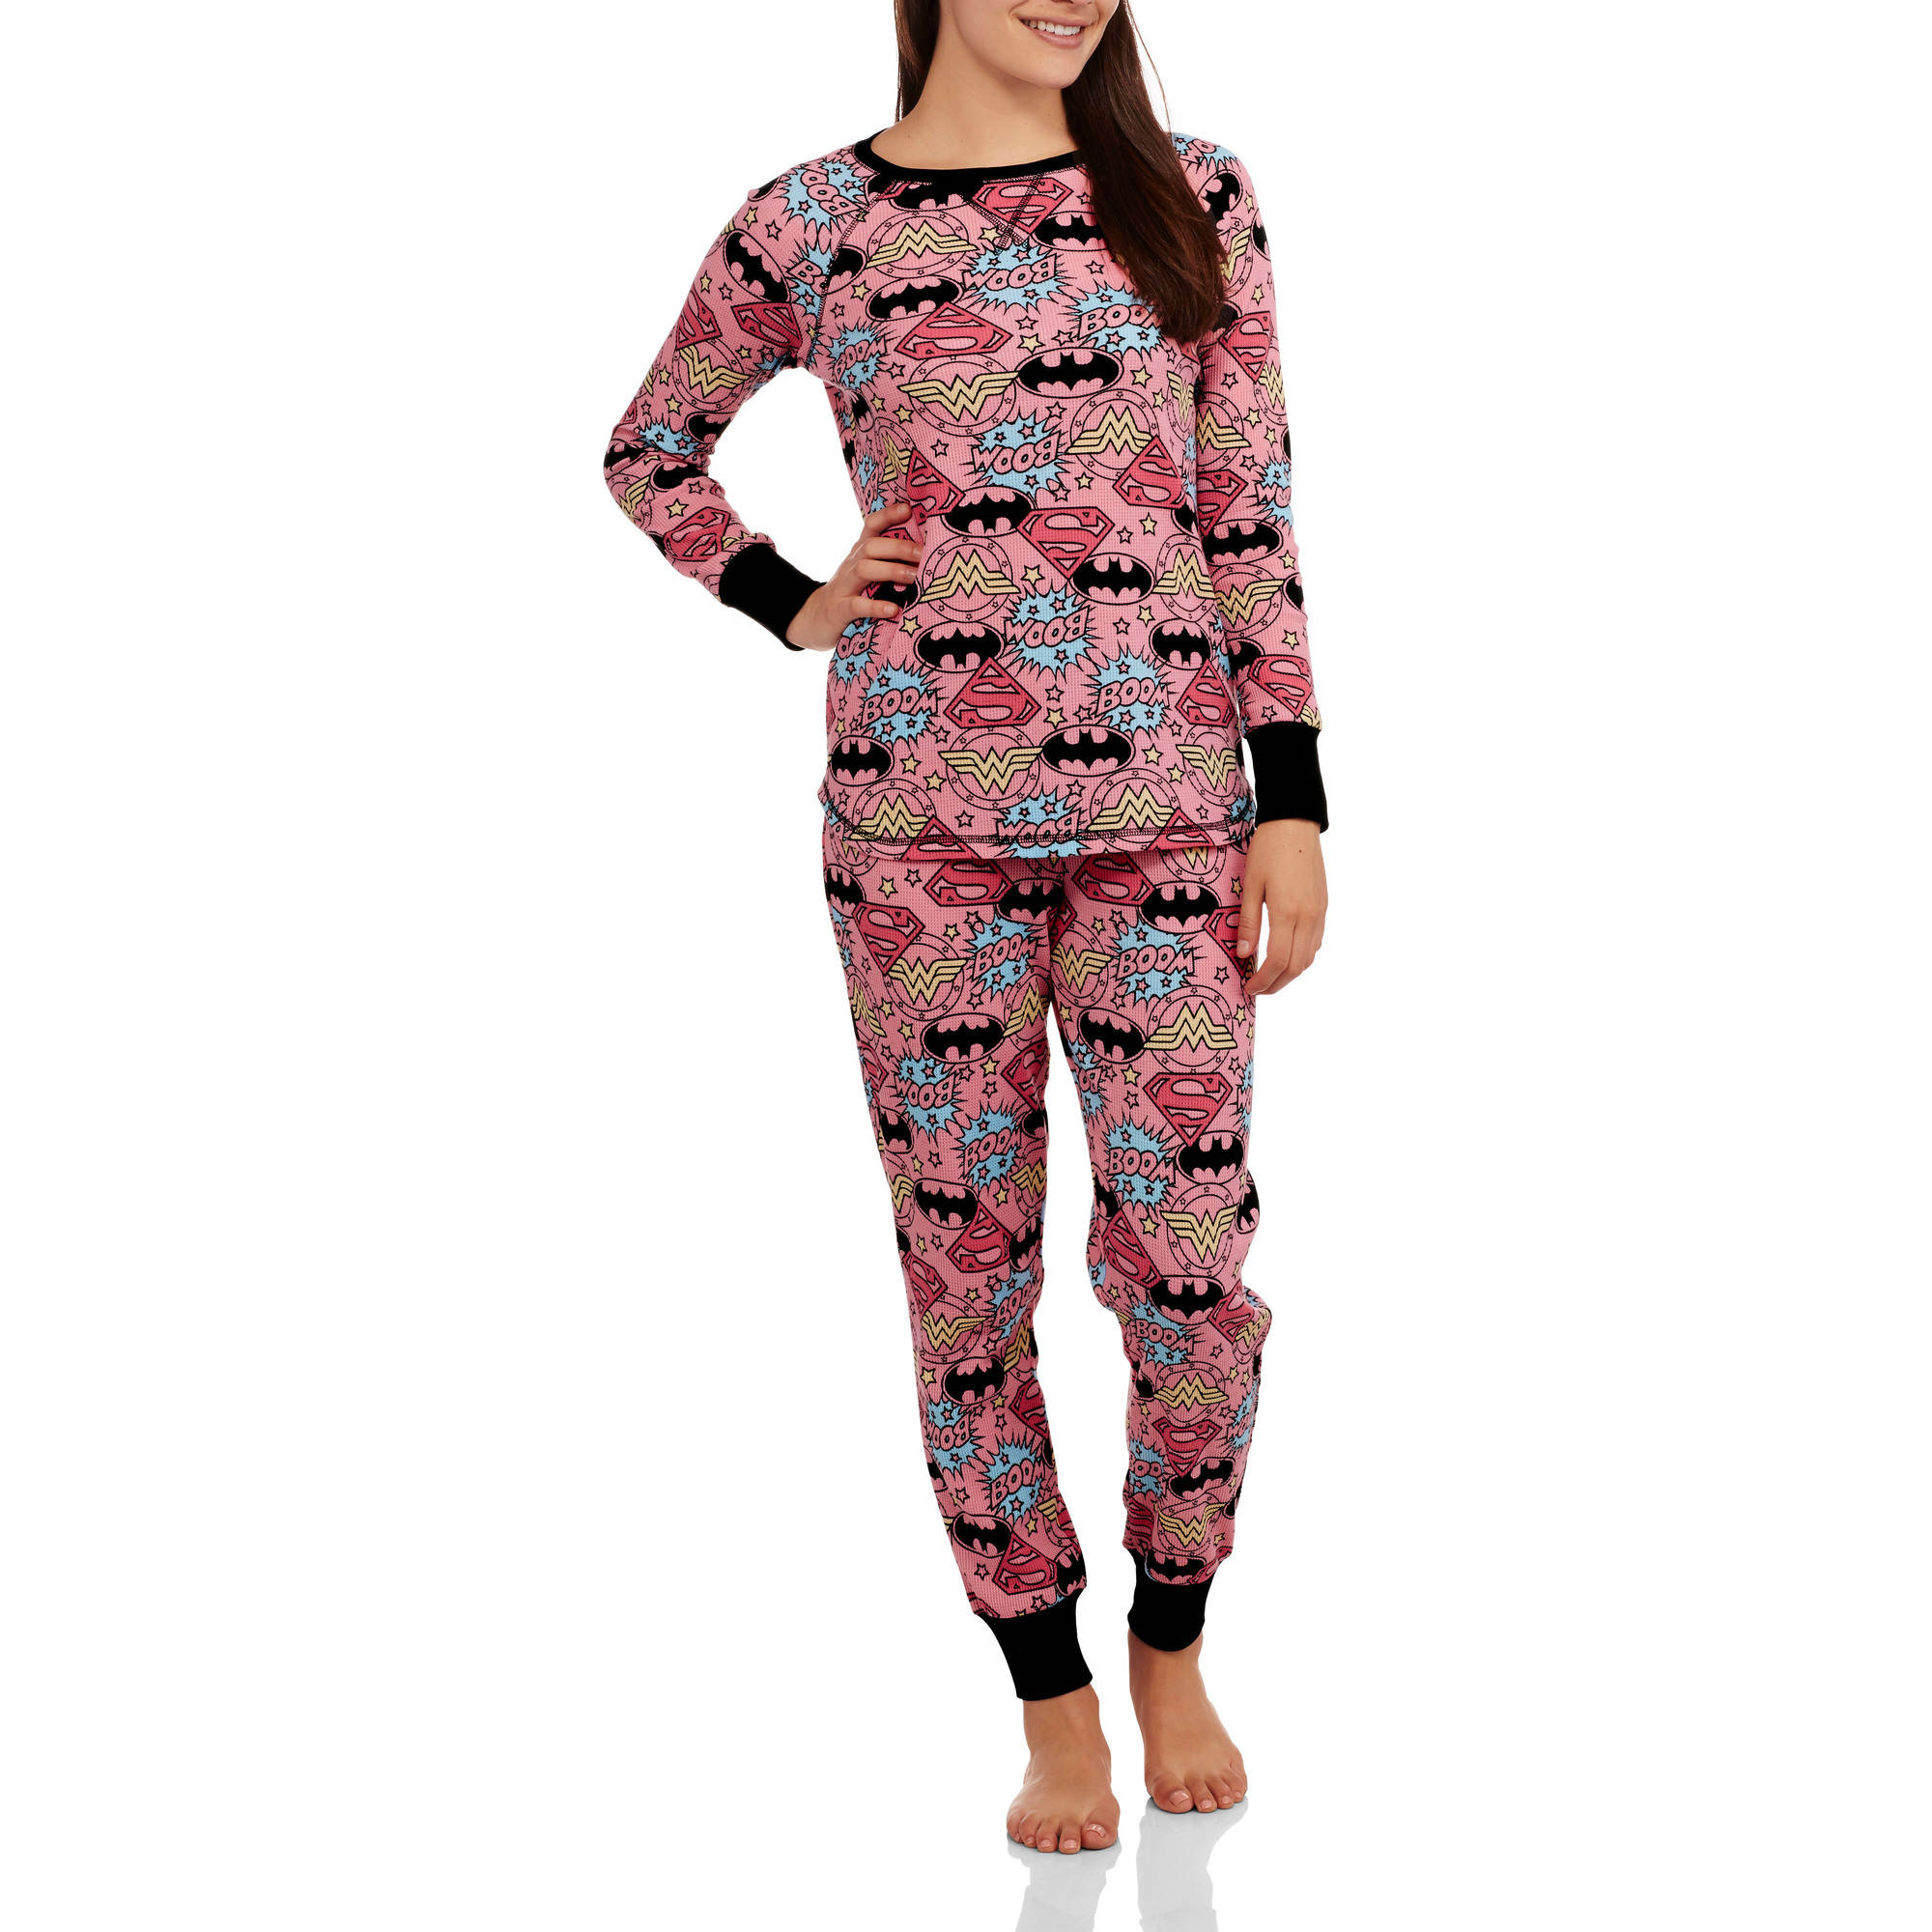 Women's License Pajama Thermal Sleep Top and Pant 2 Piece Sleepwear Set